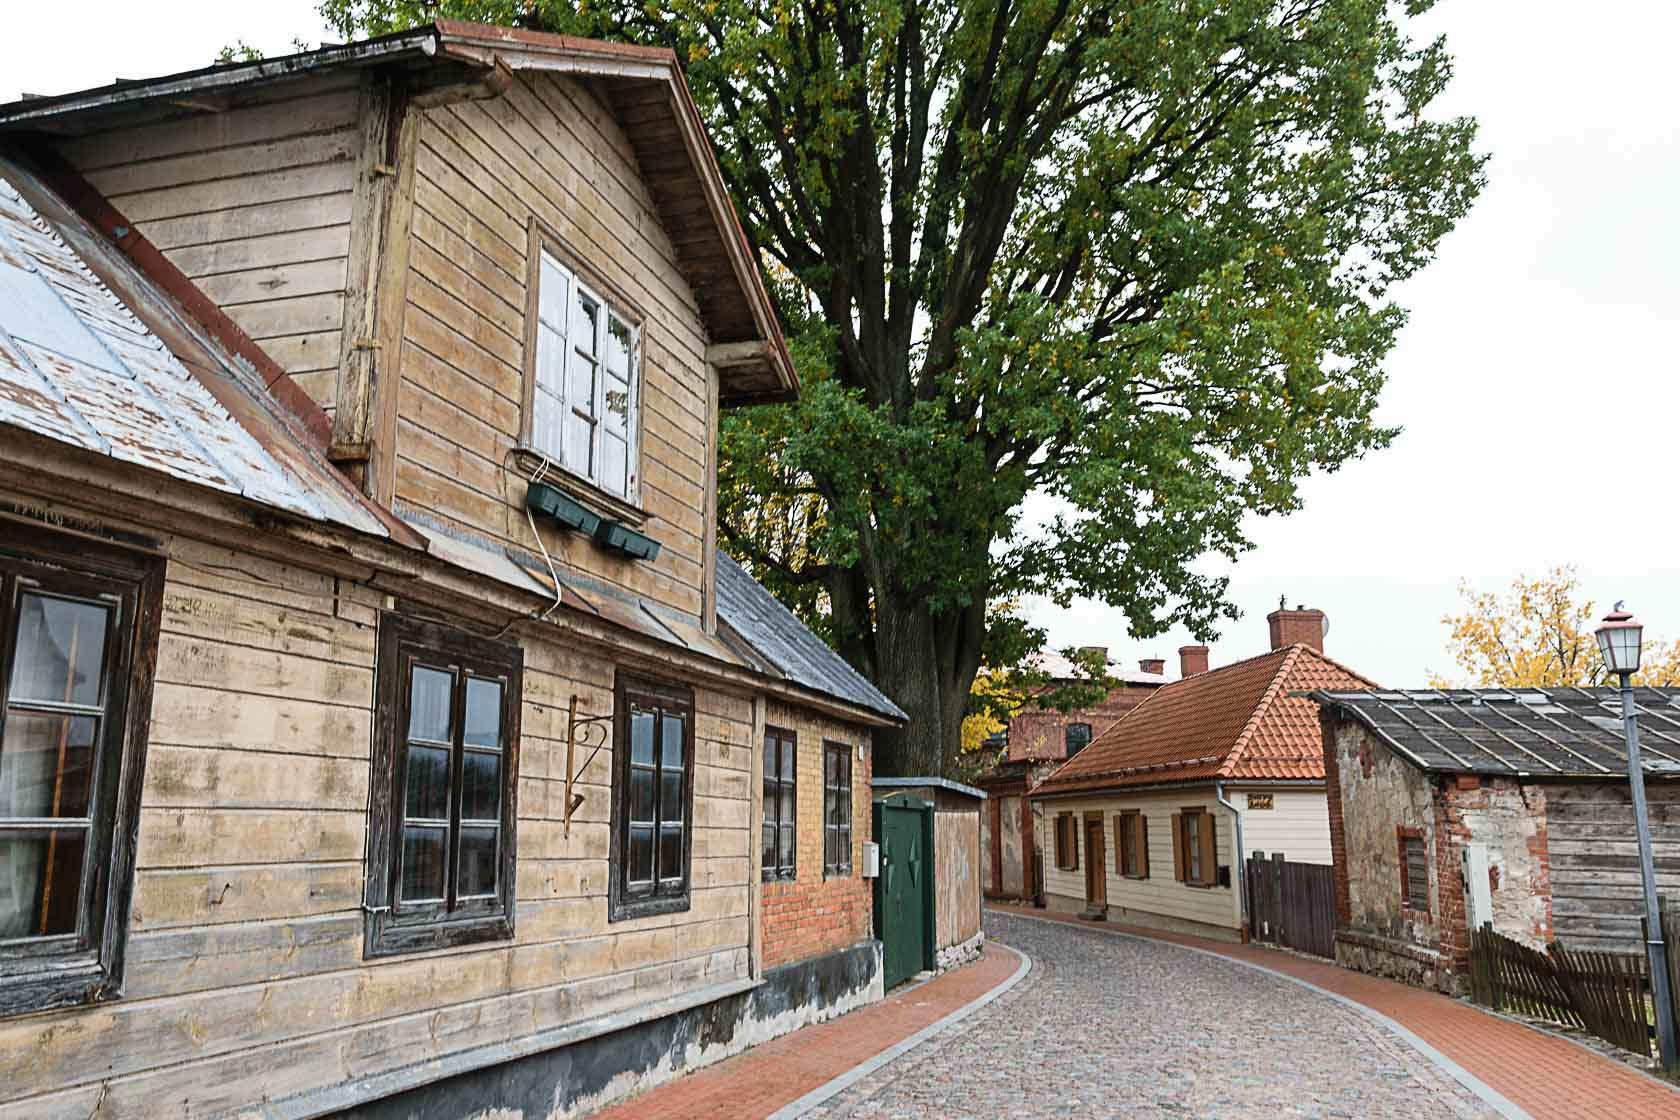 Cesis Old Town